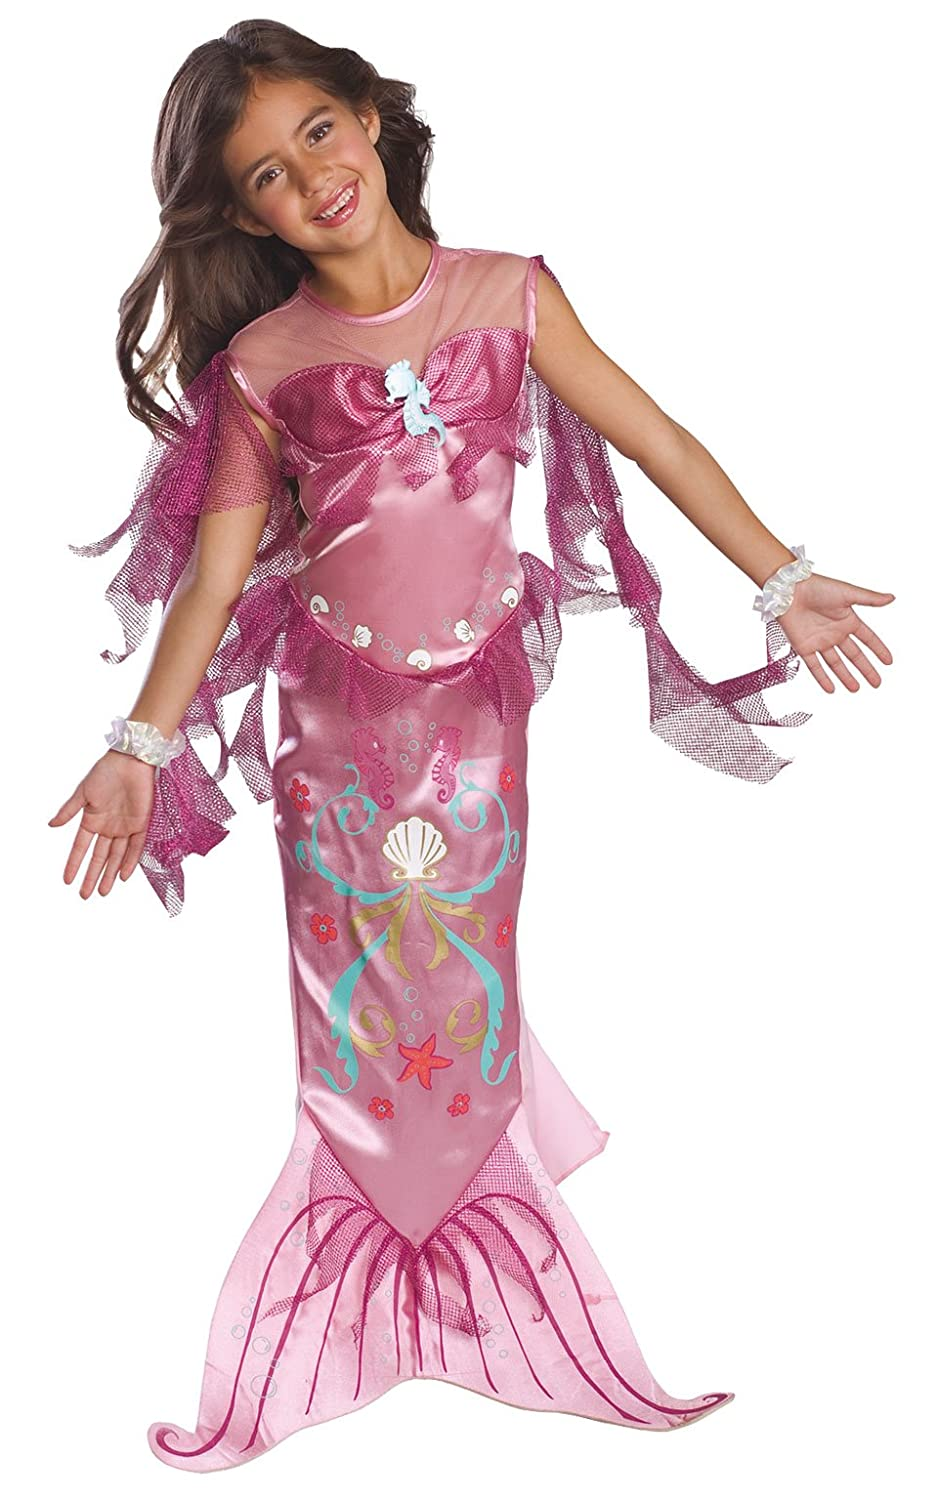 amazoncom childs pink mermaid costume small toys games - Mermaid Halloween Costume For Kids